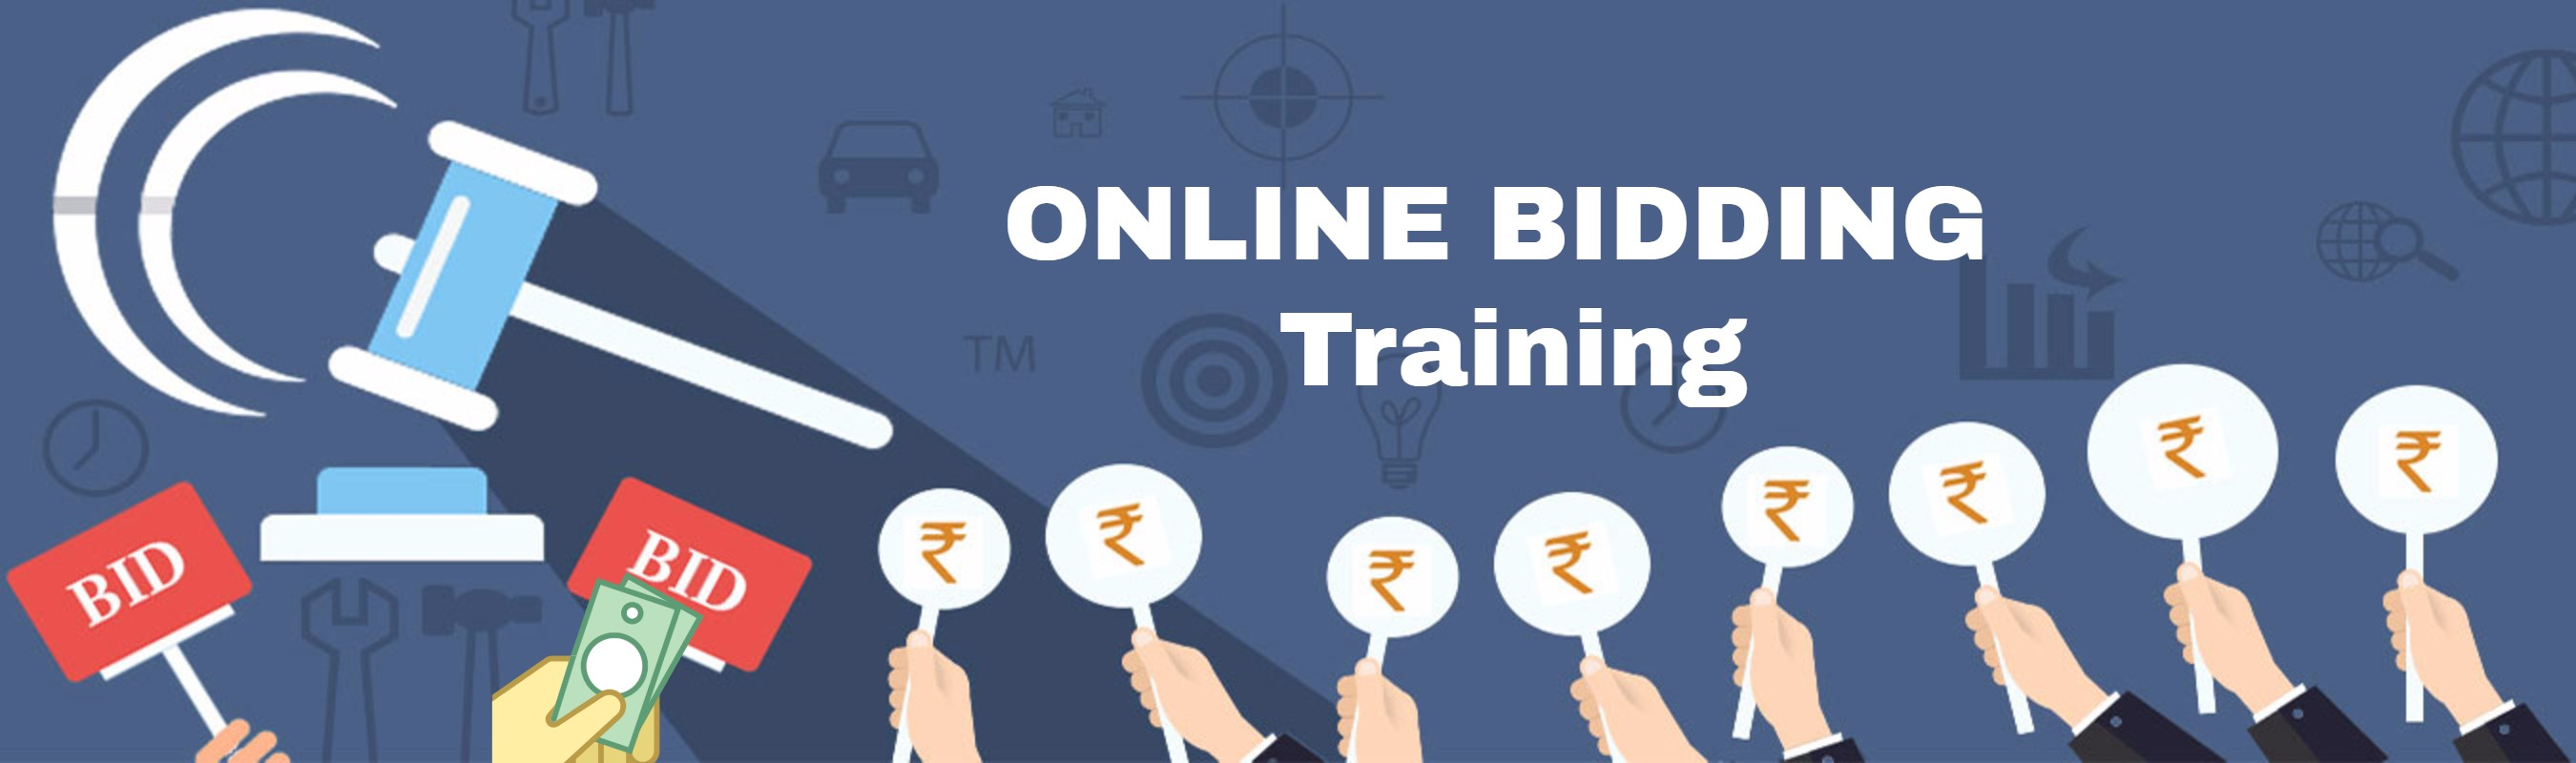 Online Bidding Freelancing Training Course in Chandigarh Mohali Panchkula